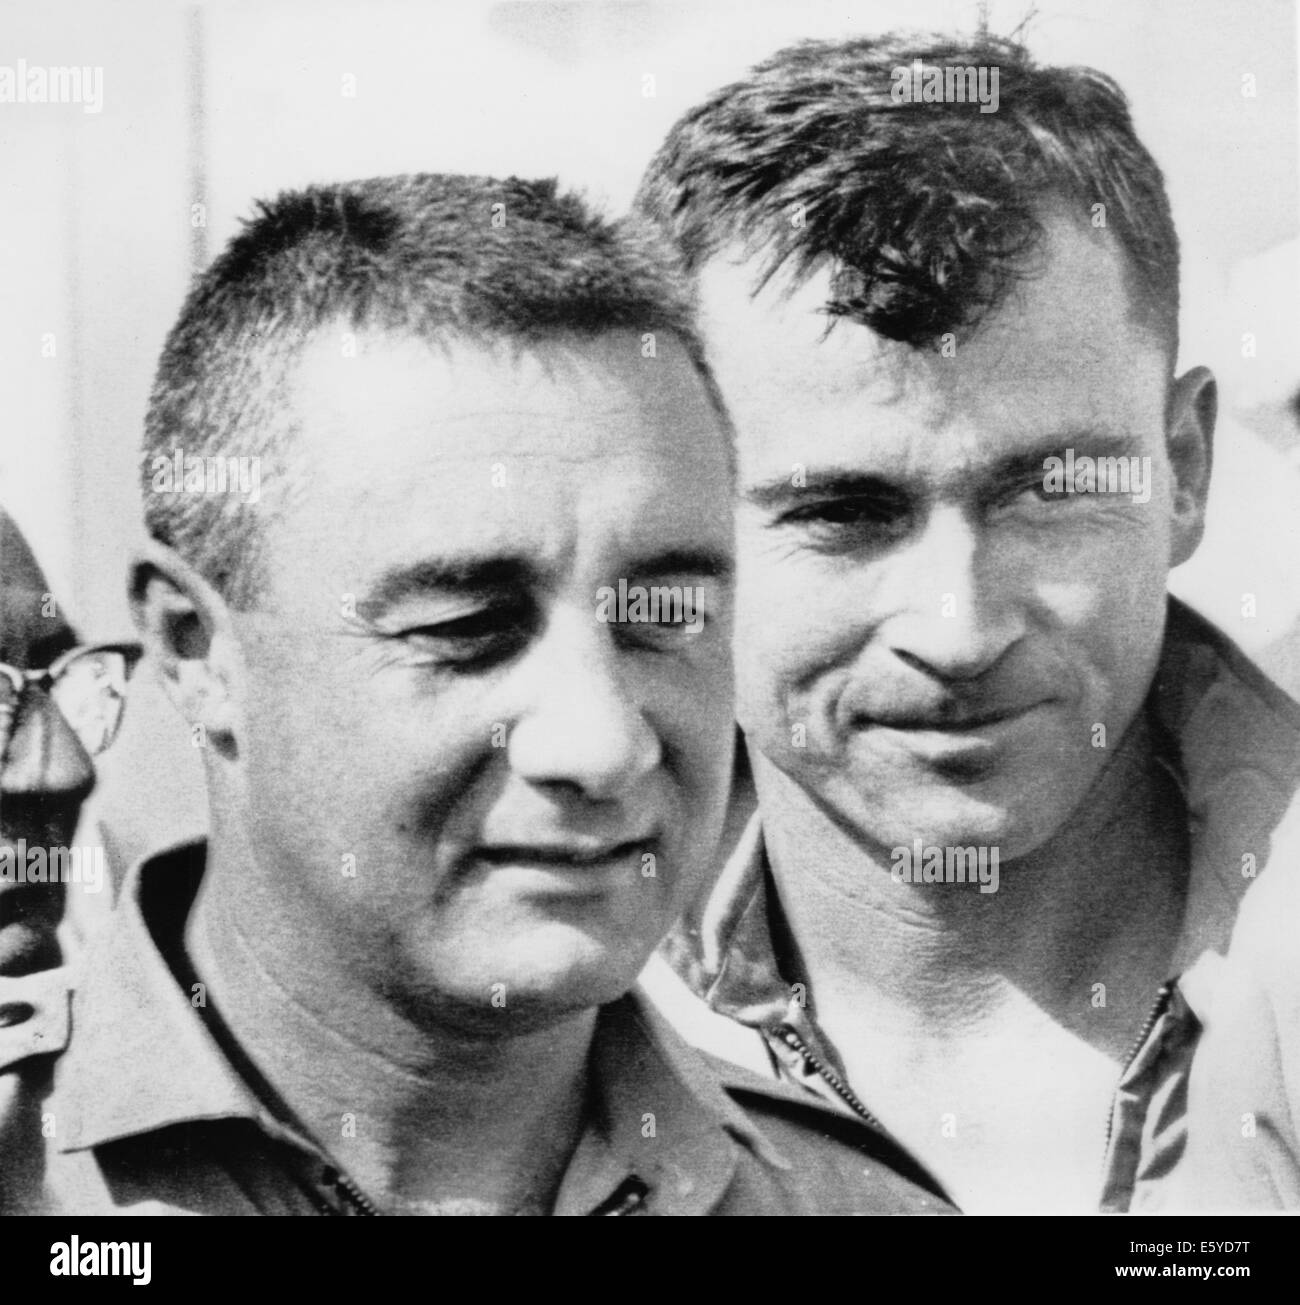 NASA Astronauts Virgil 'Gus' Grissom and John Young, upon Completion of Gemini 3 Space Mission, Portrait, - Stock Image